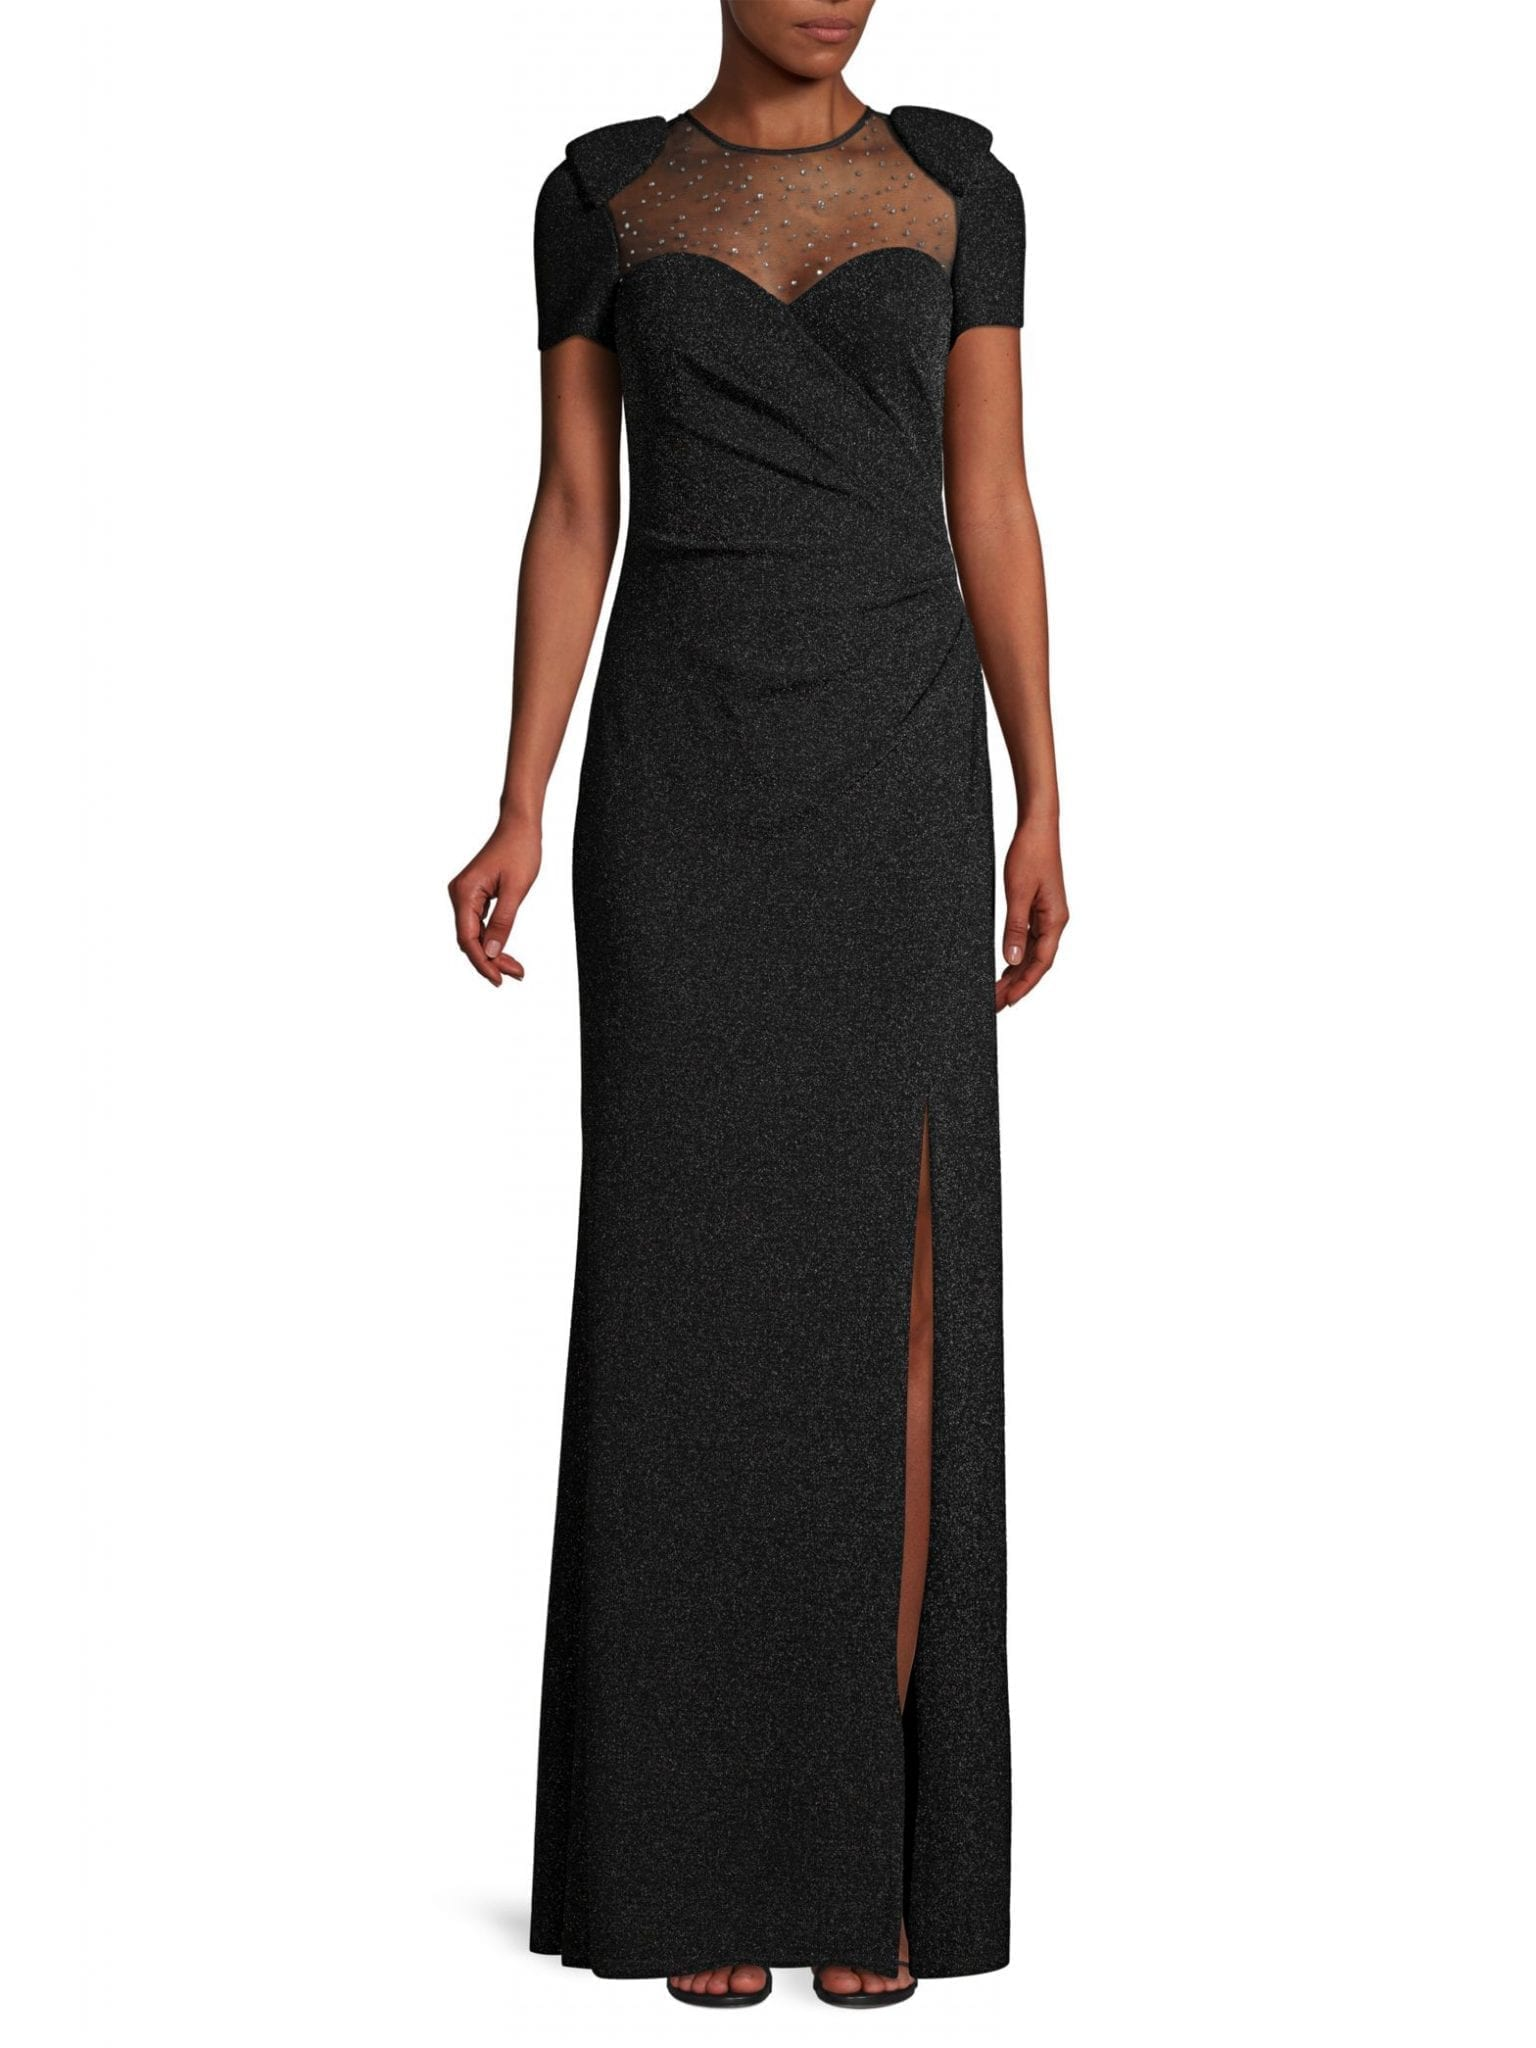 BASIX BLACK LABEL Glitter Beaded Illusion Neckline Gown